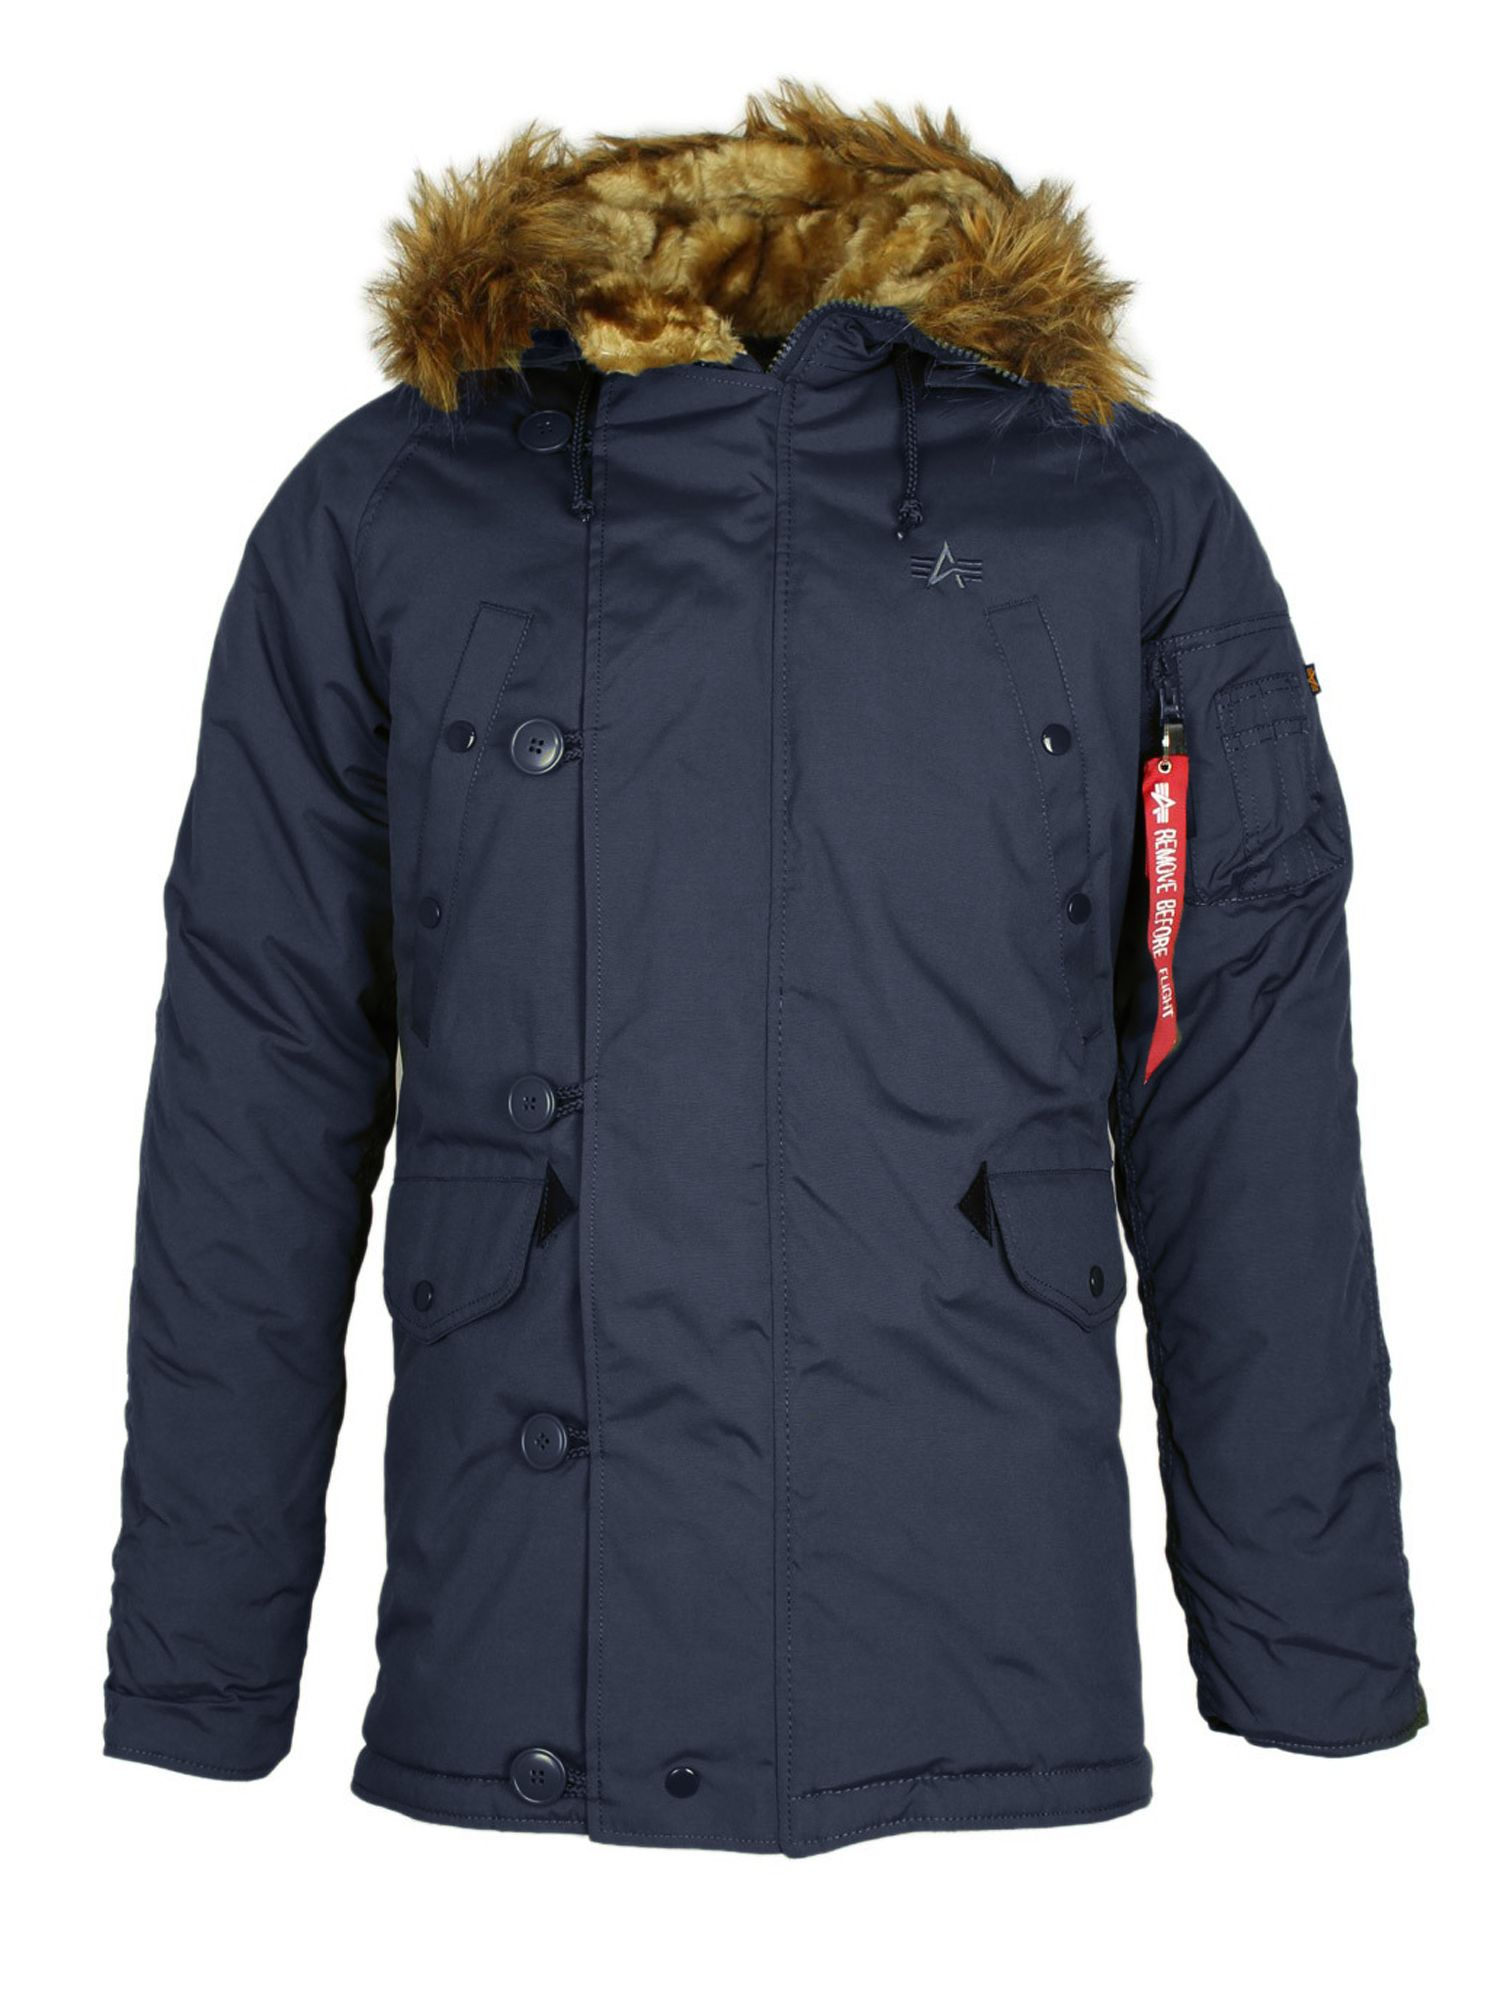 Alpha Industries Men's Alpha Industries Explorer Jacket W/O Patches, Navy